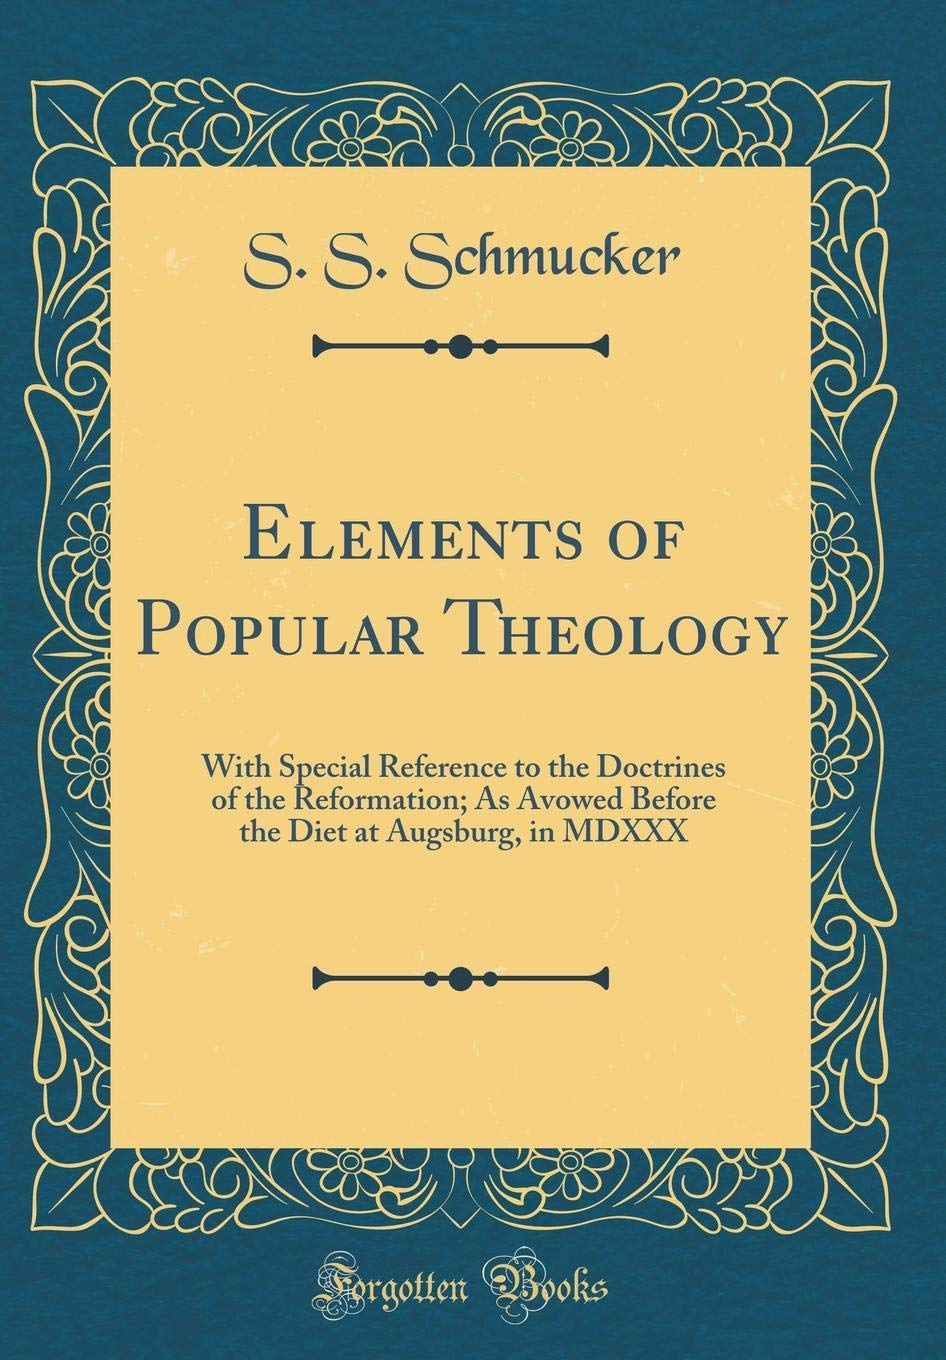 Download Elements of Popular Theology: With Special Reference to the Doctrines of the Reformation; As Avowed Before the Diet at Augsburg, in MDXXX (Classic Reprint) pdf epub